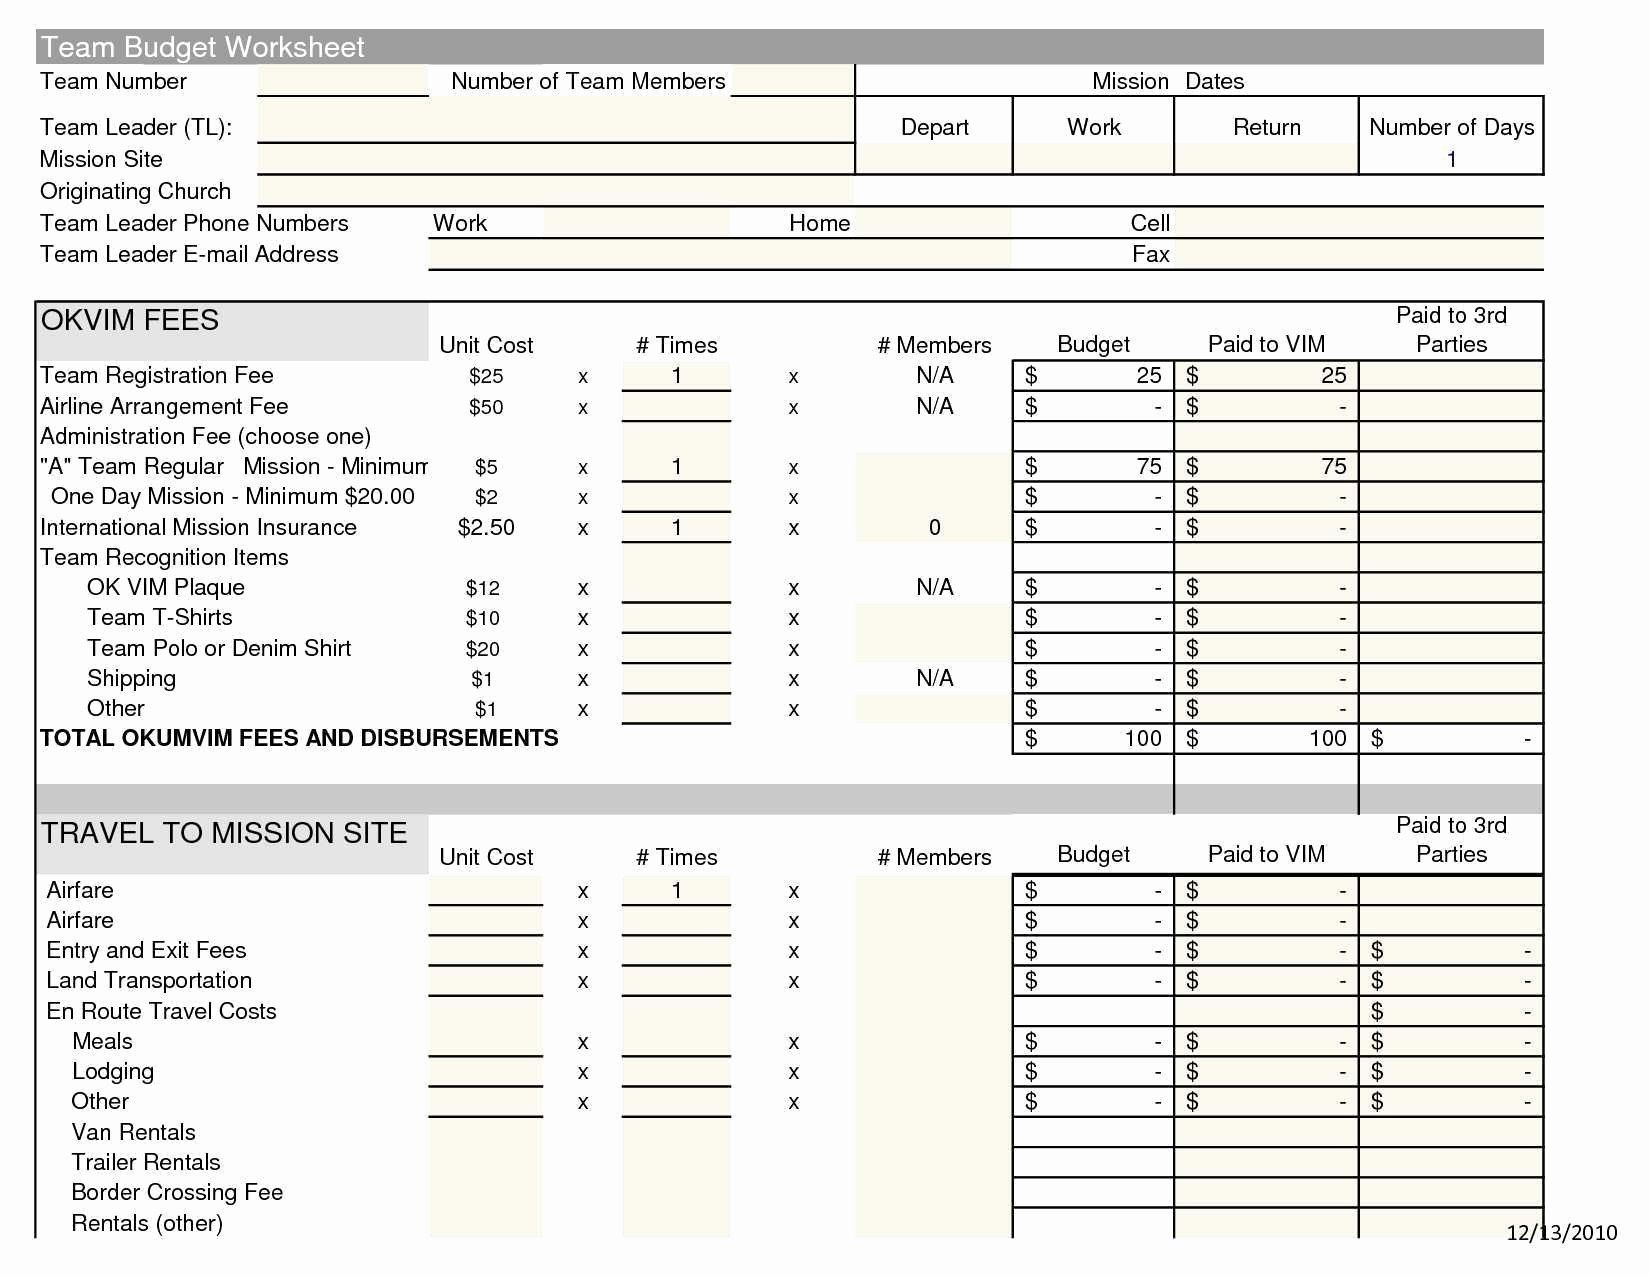 Balance Sheet Reconciliation Template Awesome Balance